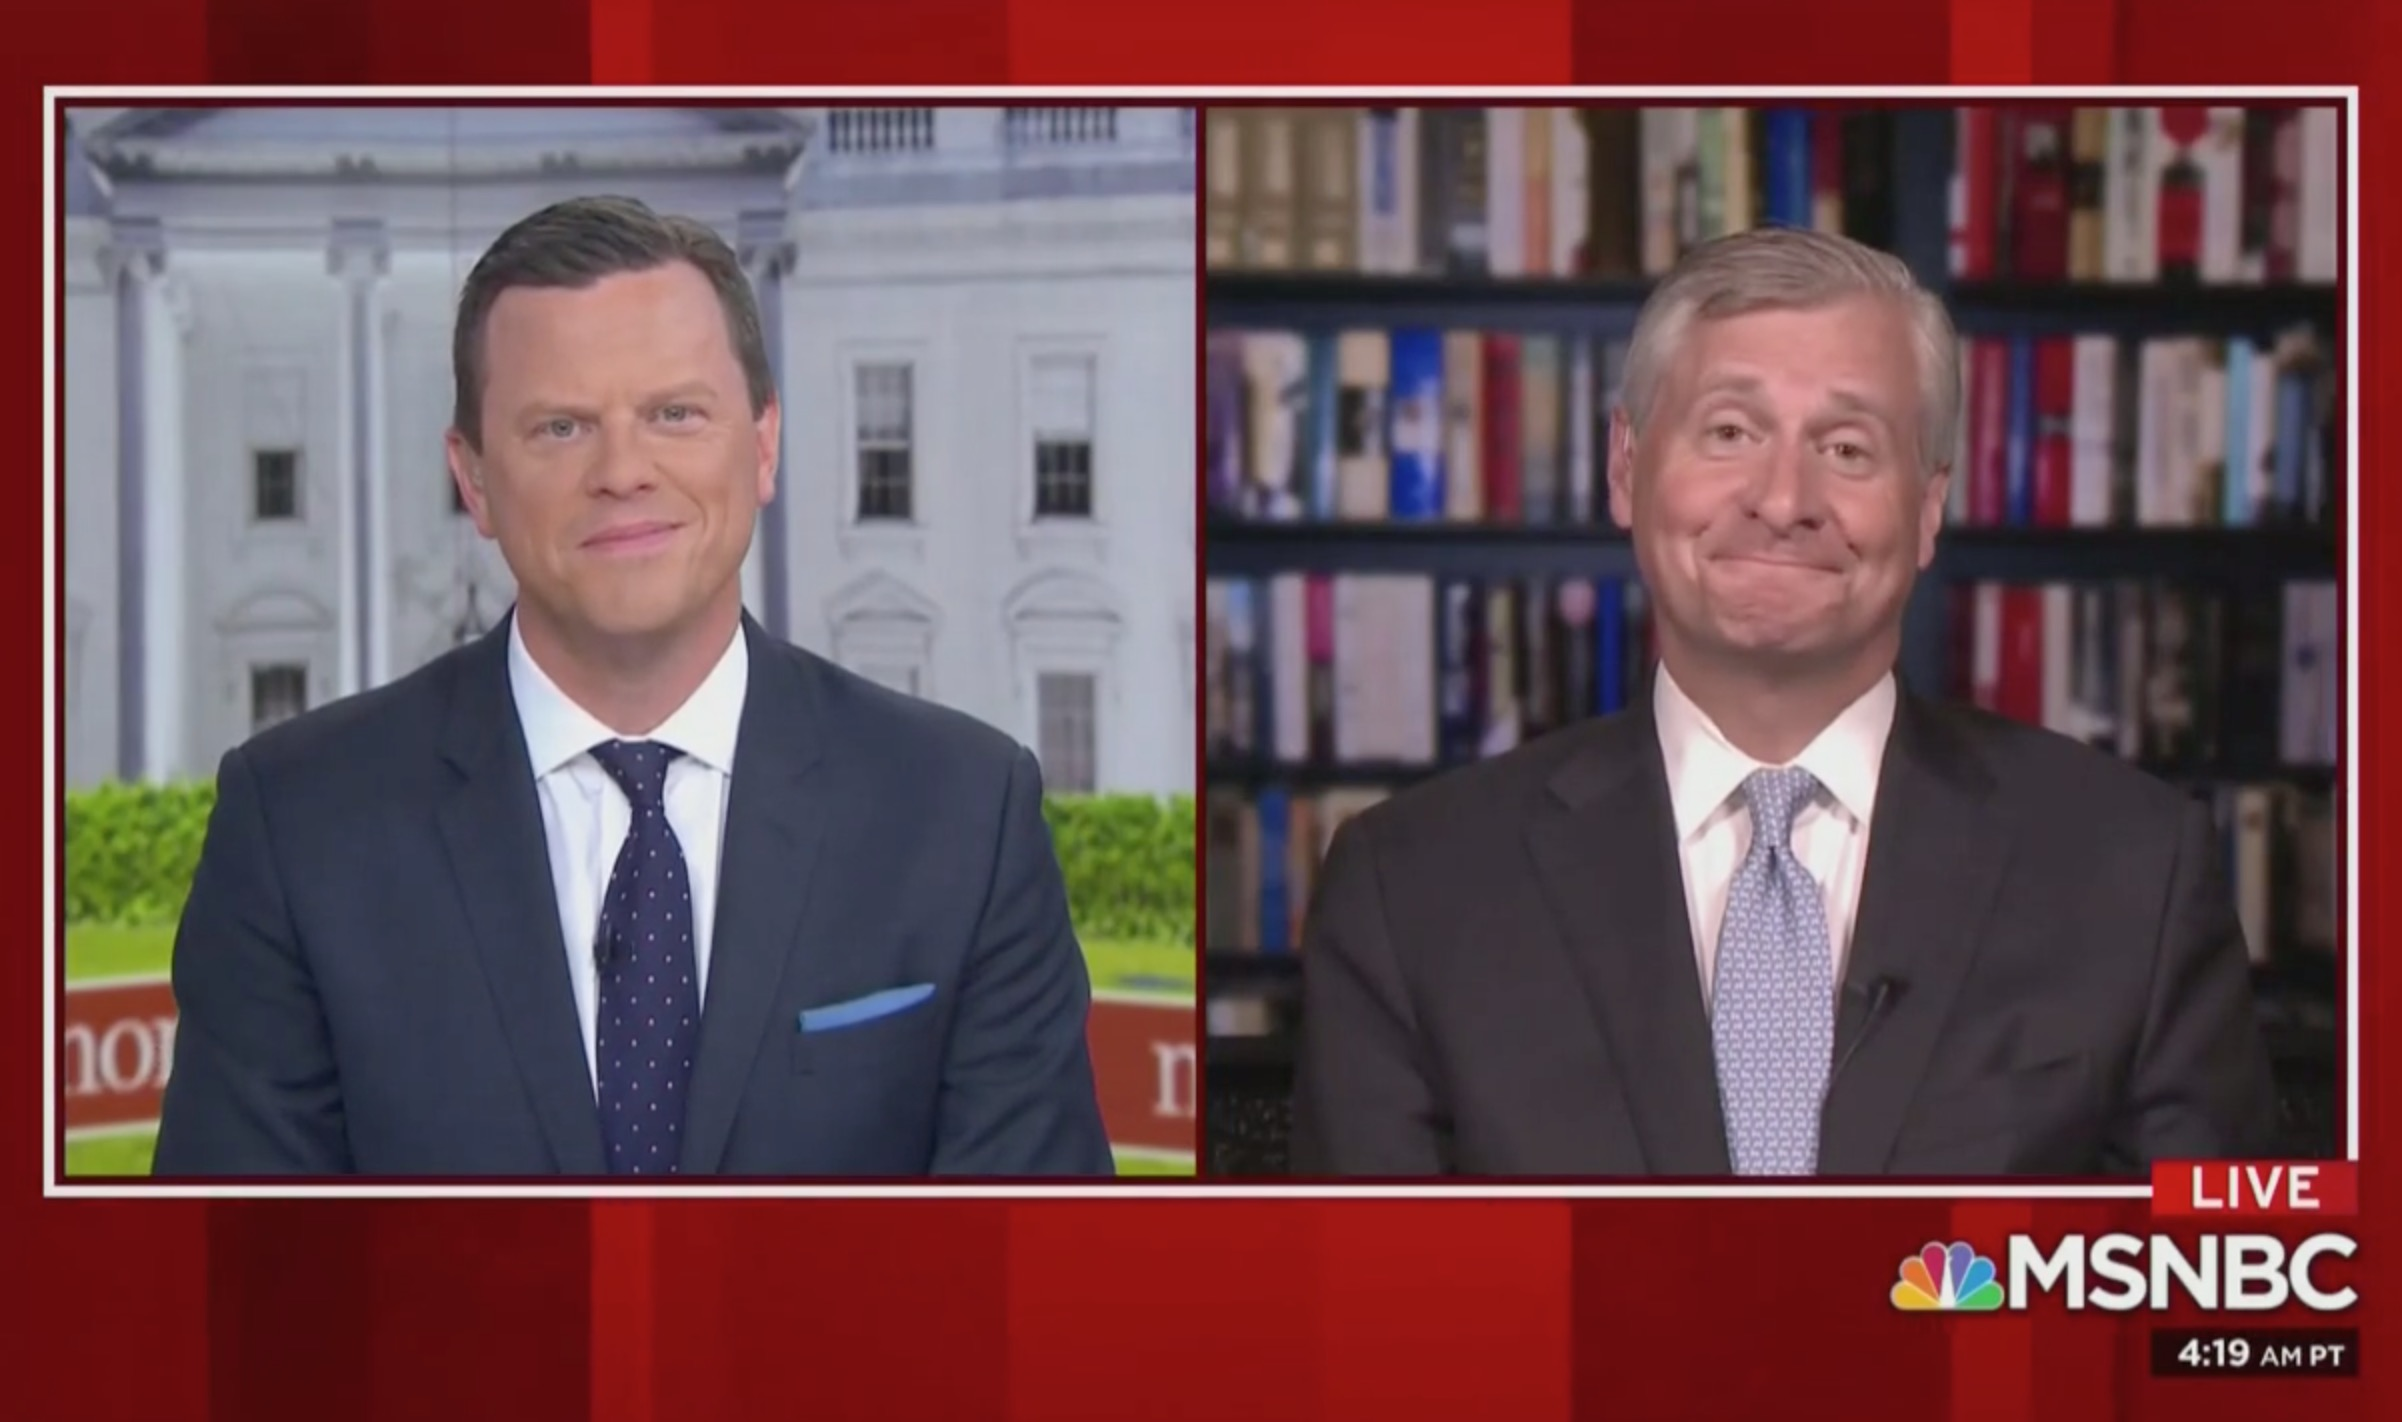 Morning Joe Openly Laughs at Trump's Confusing 'Western-Style Liberalism' With California Politics